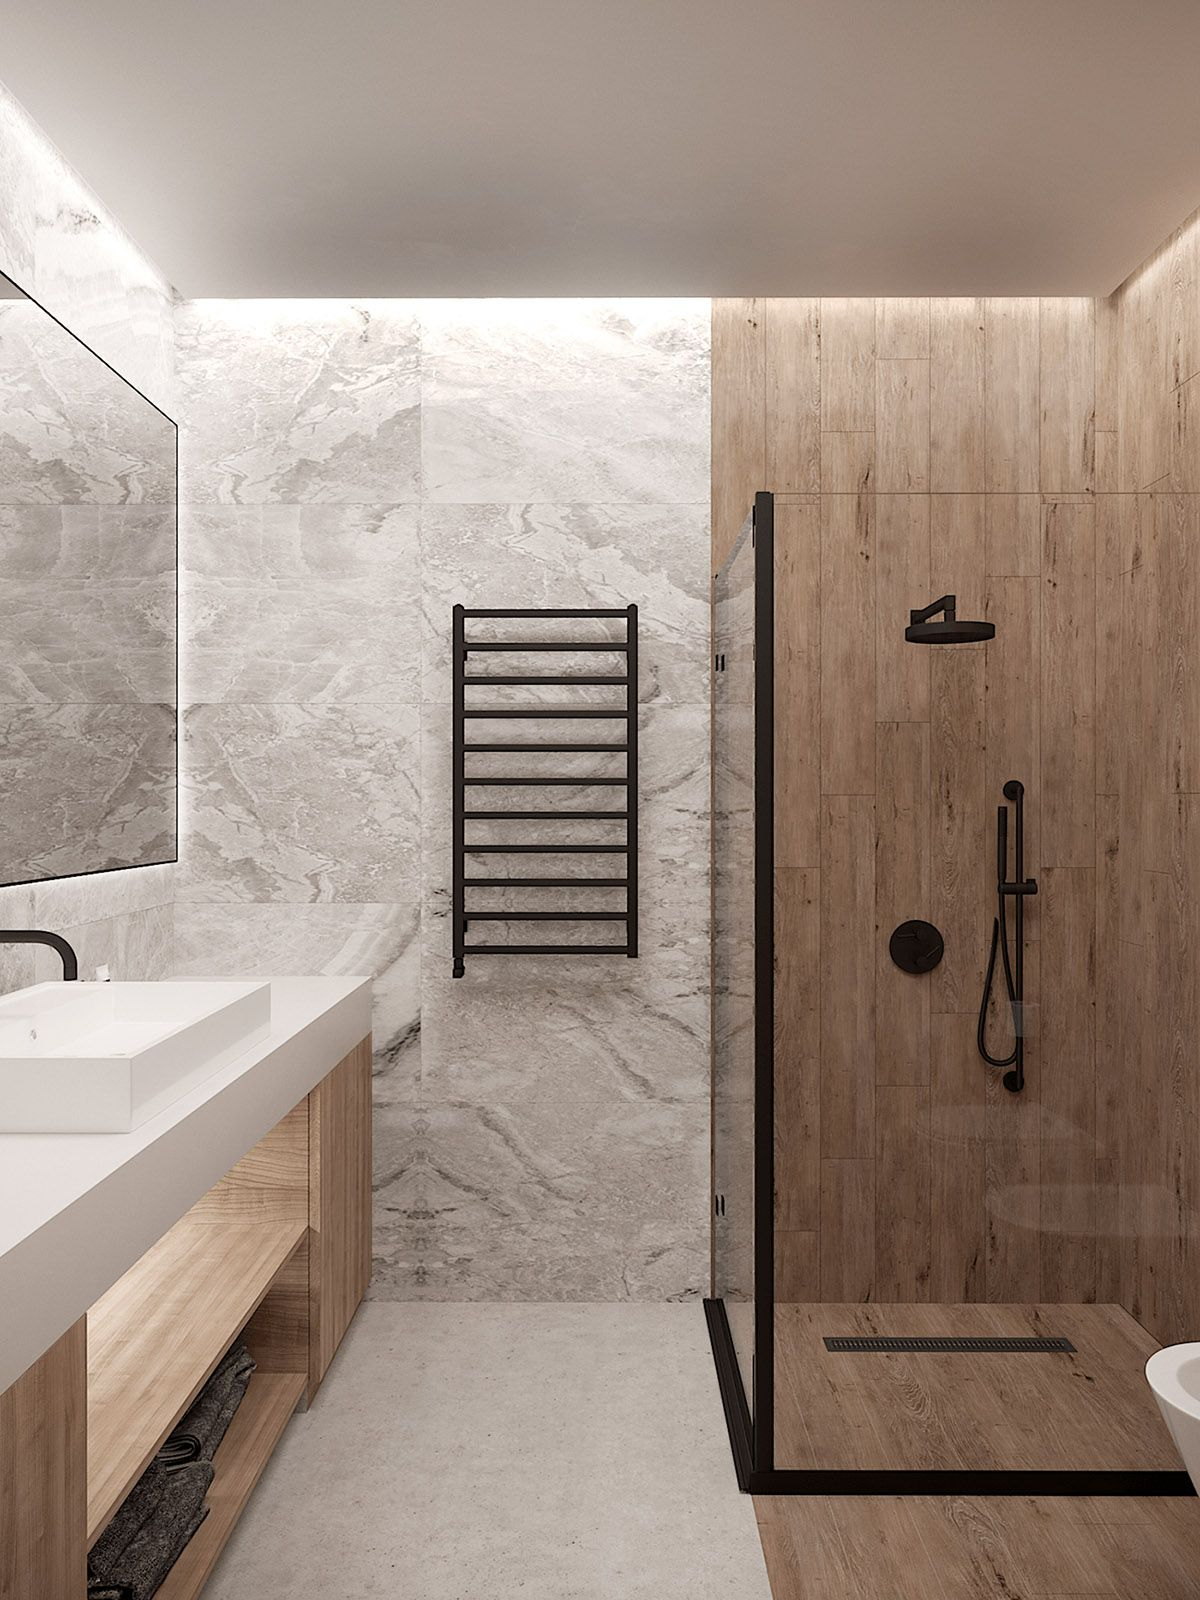 3 Small Home Interiors With Their Own Sense Of Style Bathroom